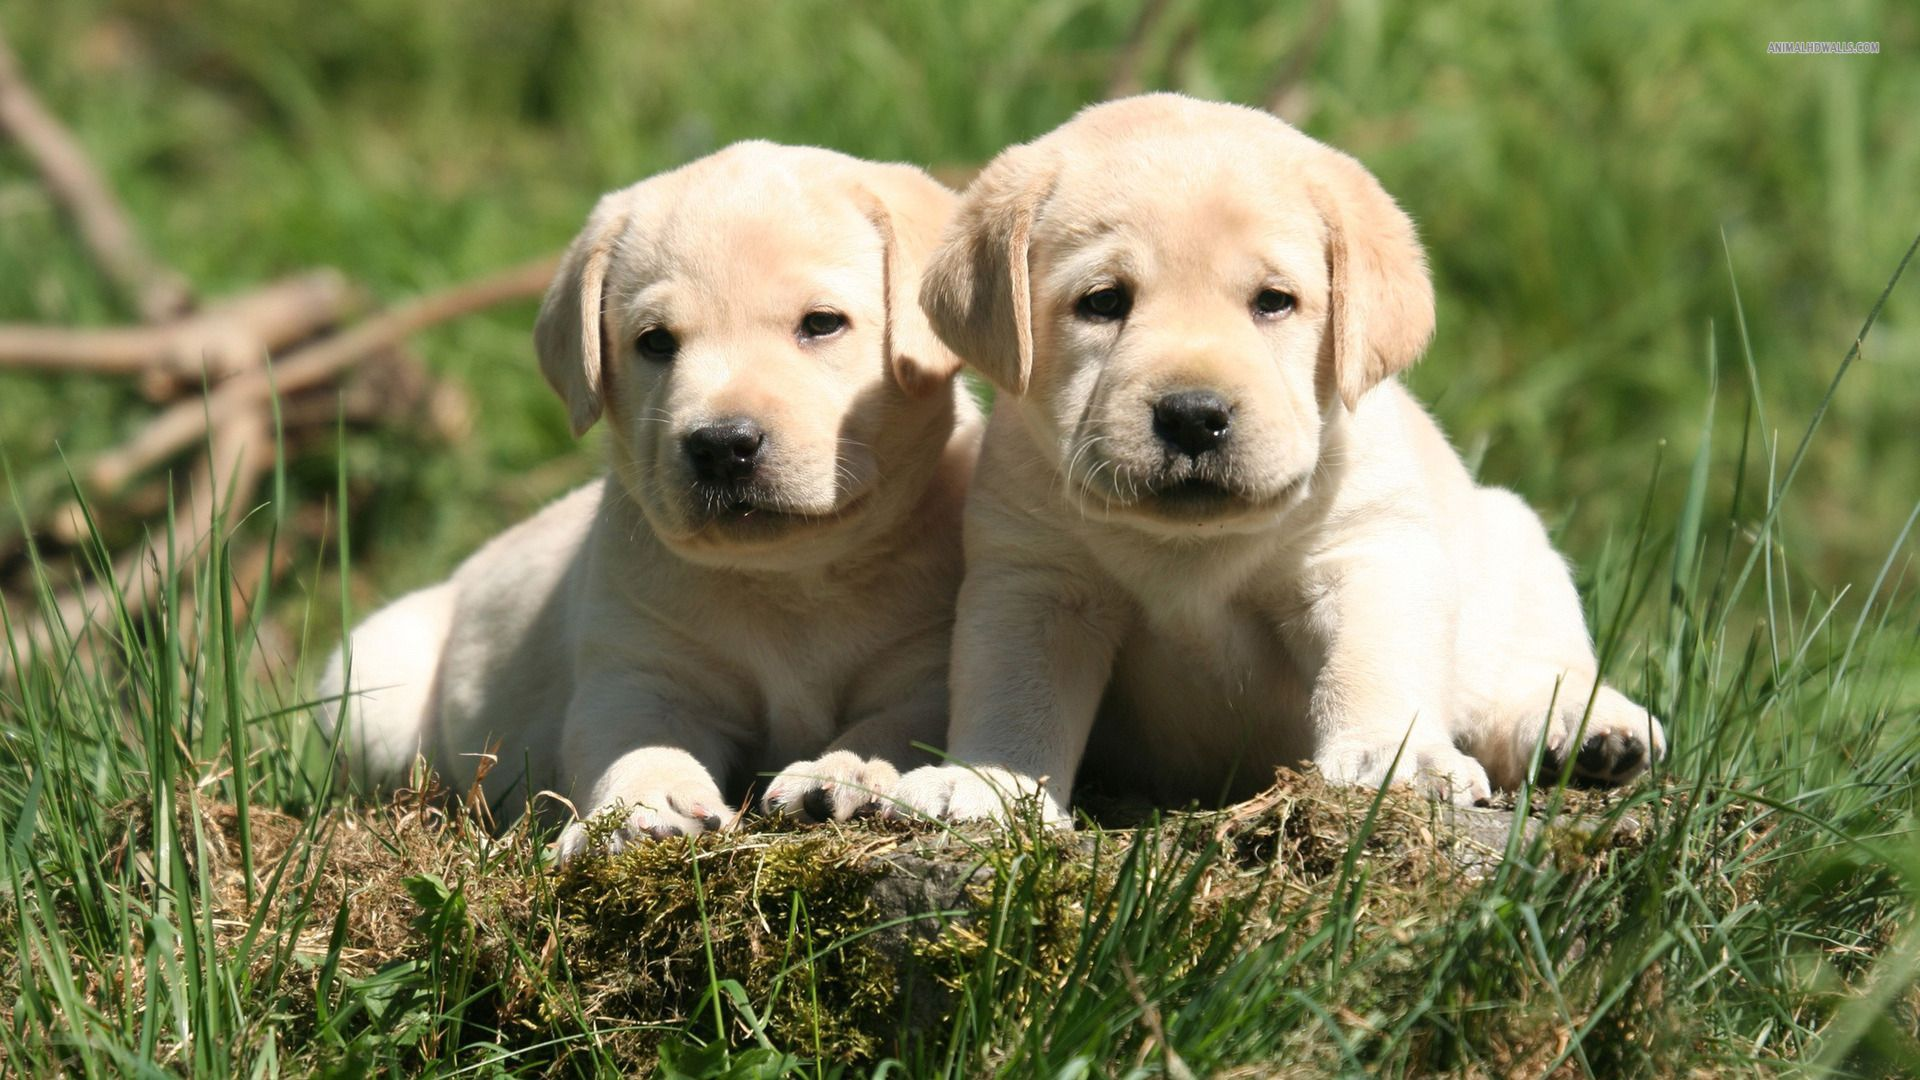 Labrador Puppy Wallpapers Free Download Great Love Art